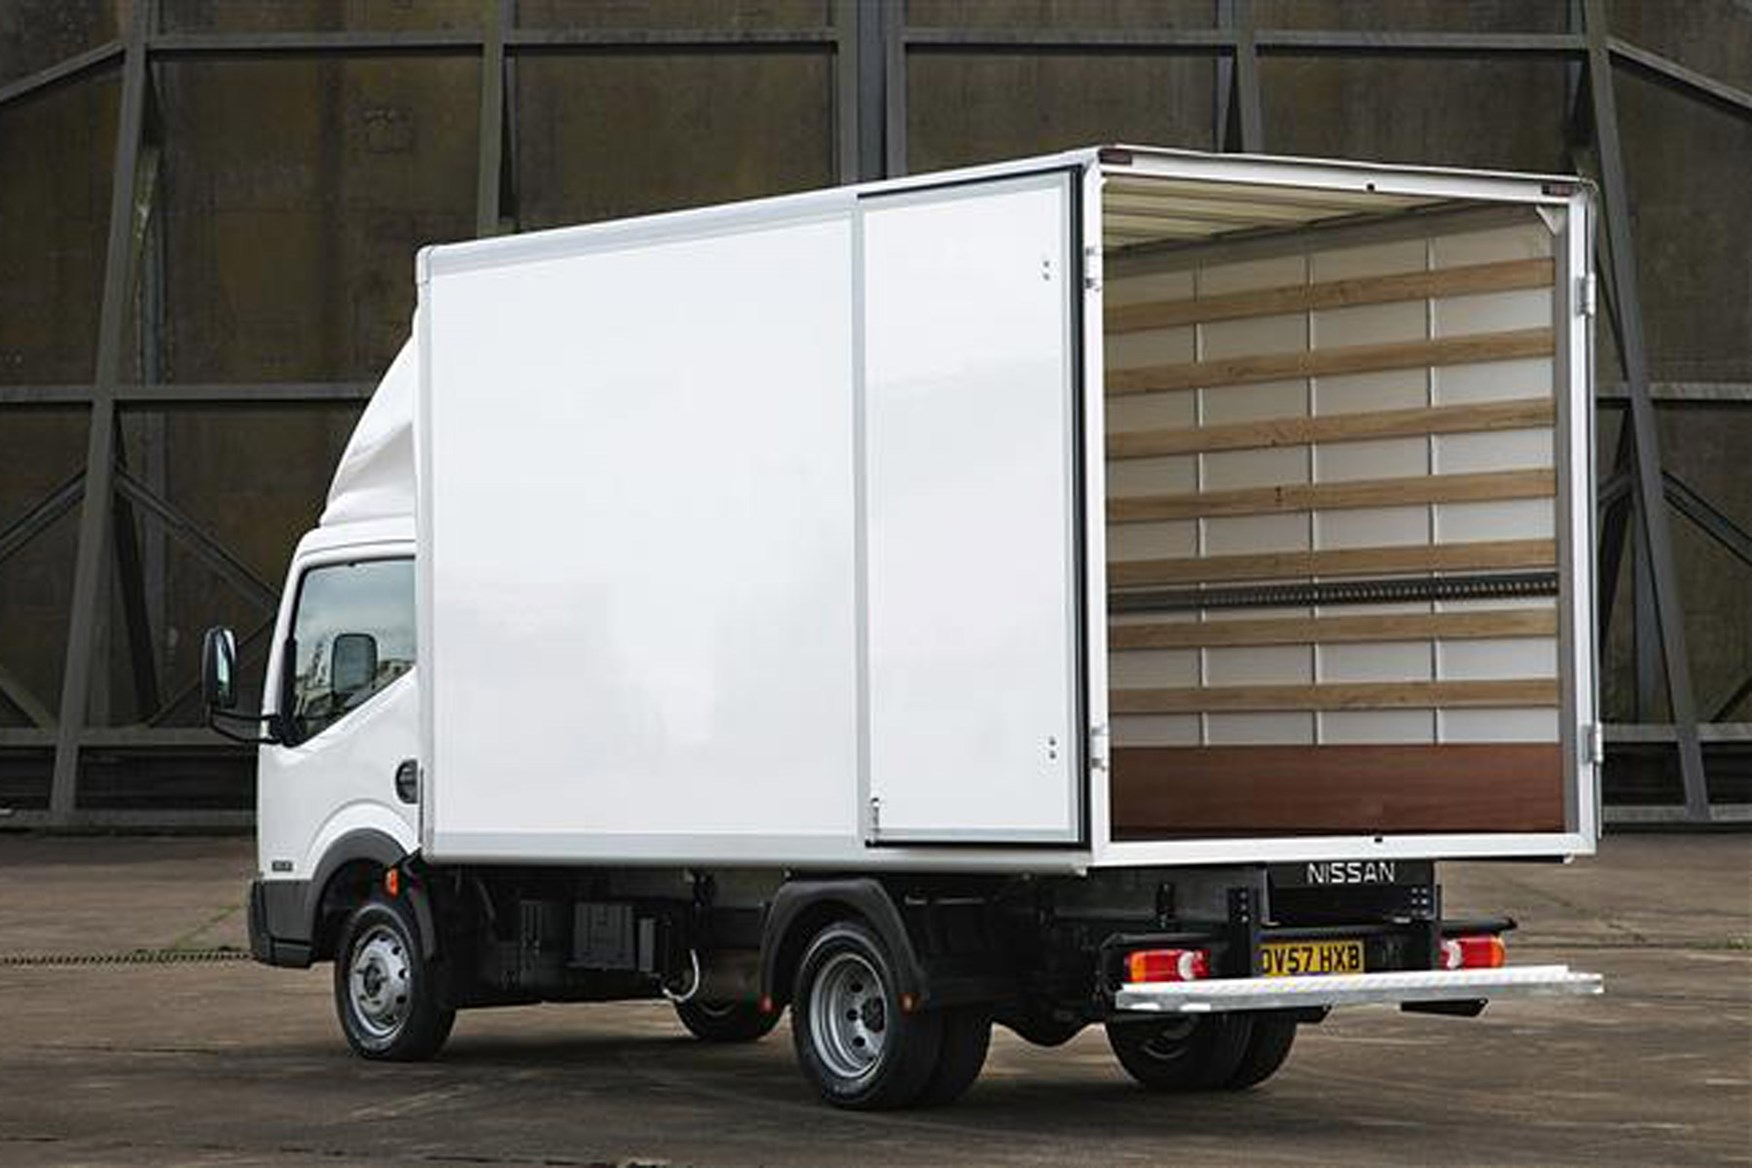 Nissan Cabstar review on Parkers Vans - load area access